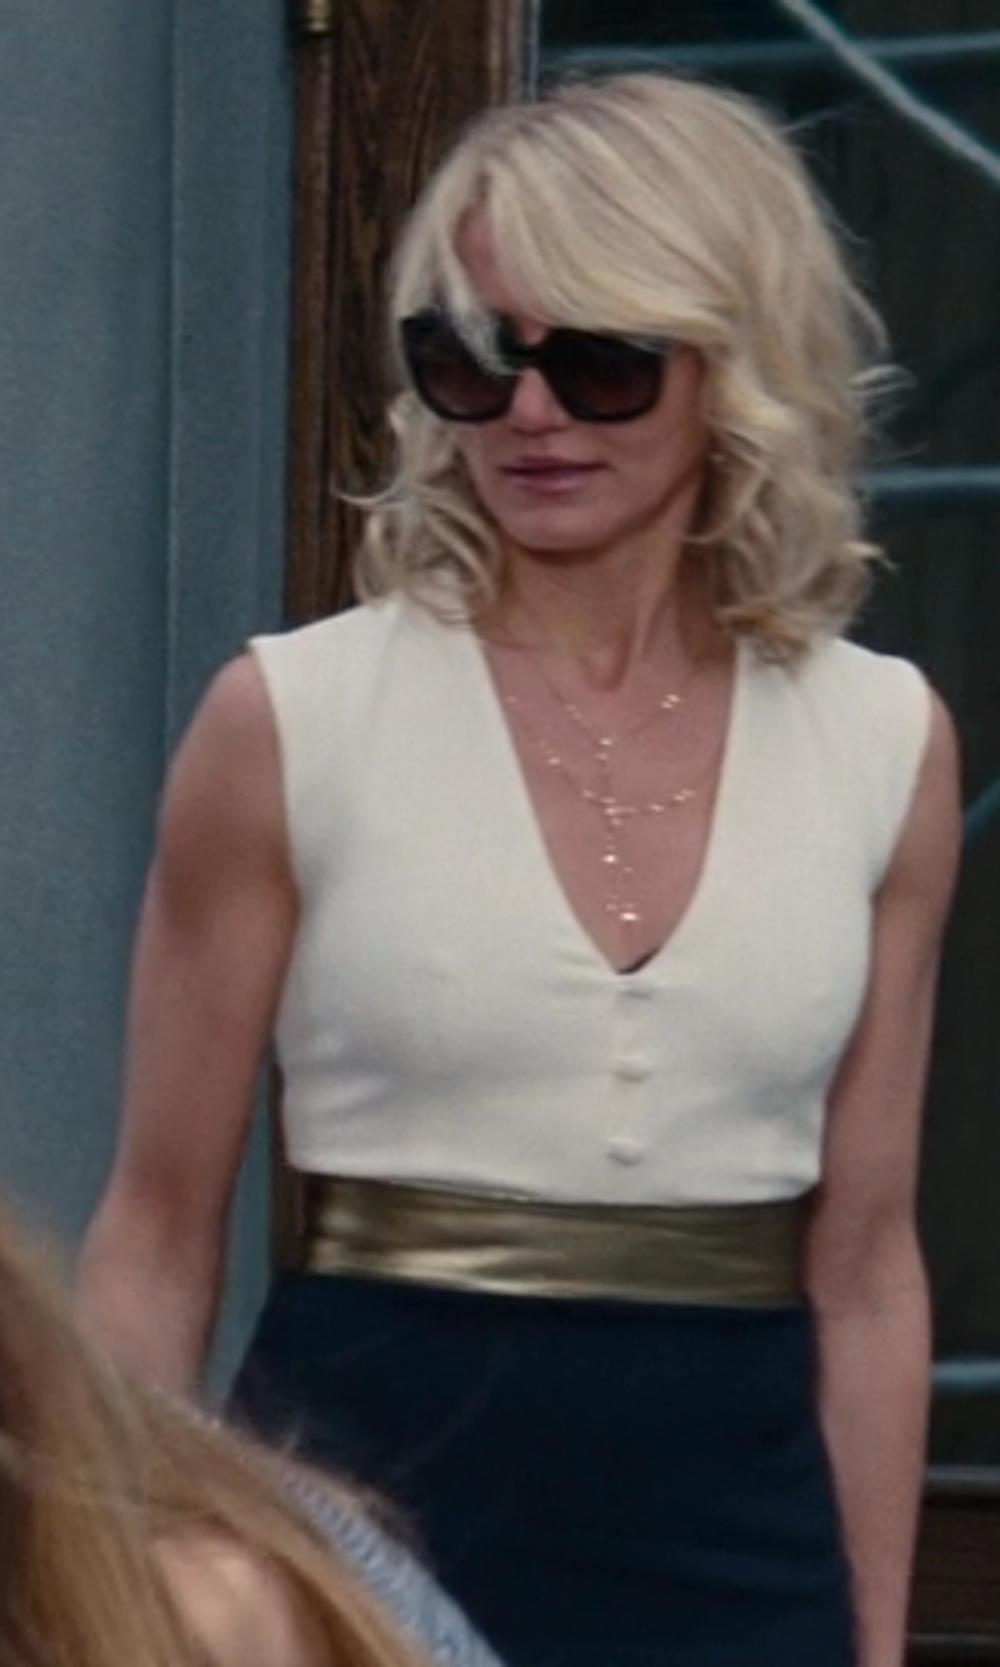 Cameron Diaz with Céline New Audrey Black Acetate Sunglasses in The Other Woman